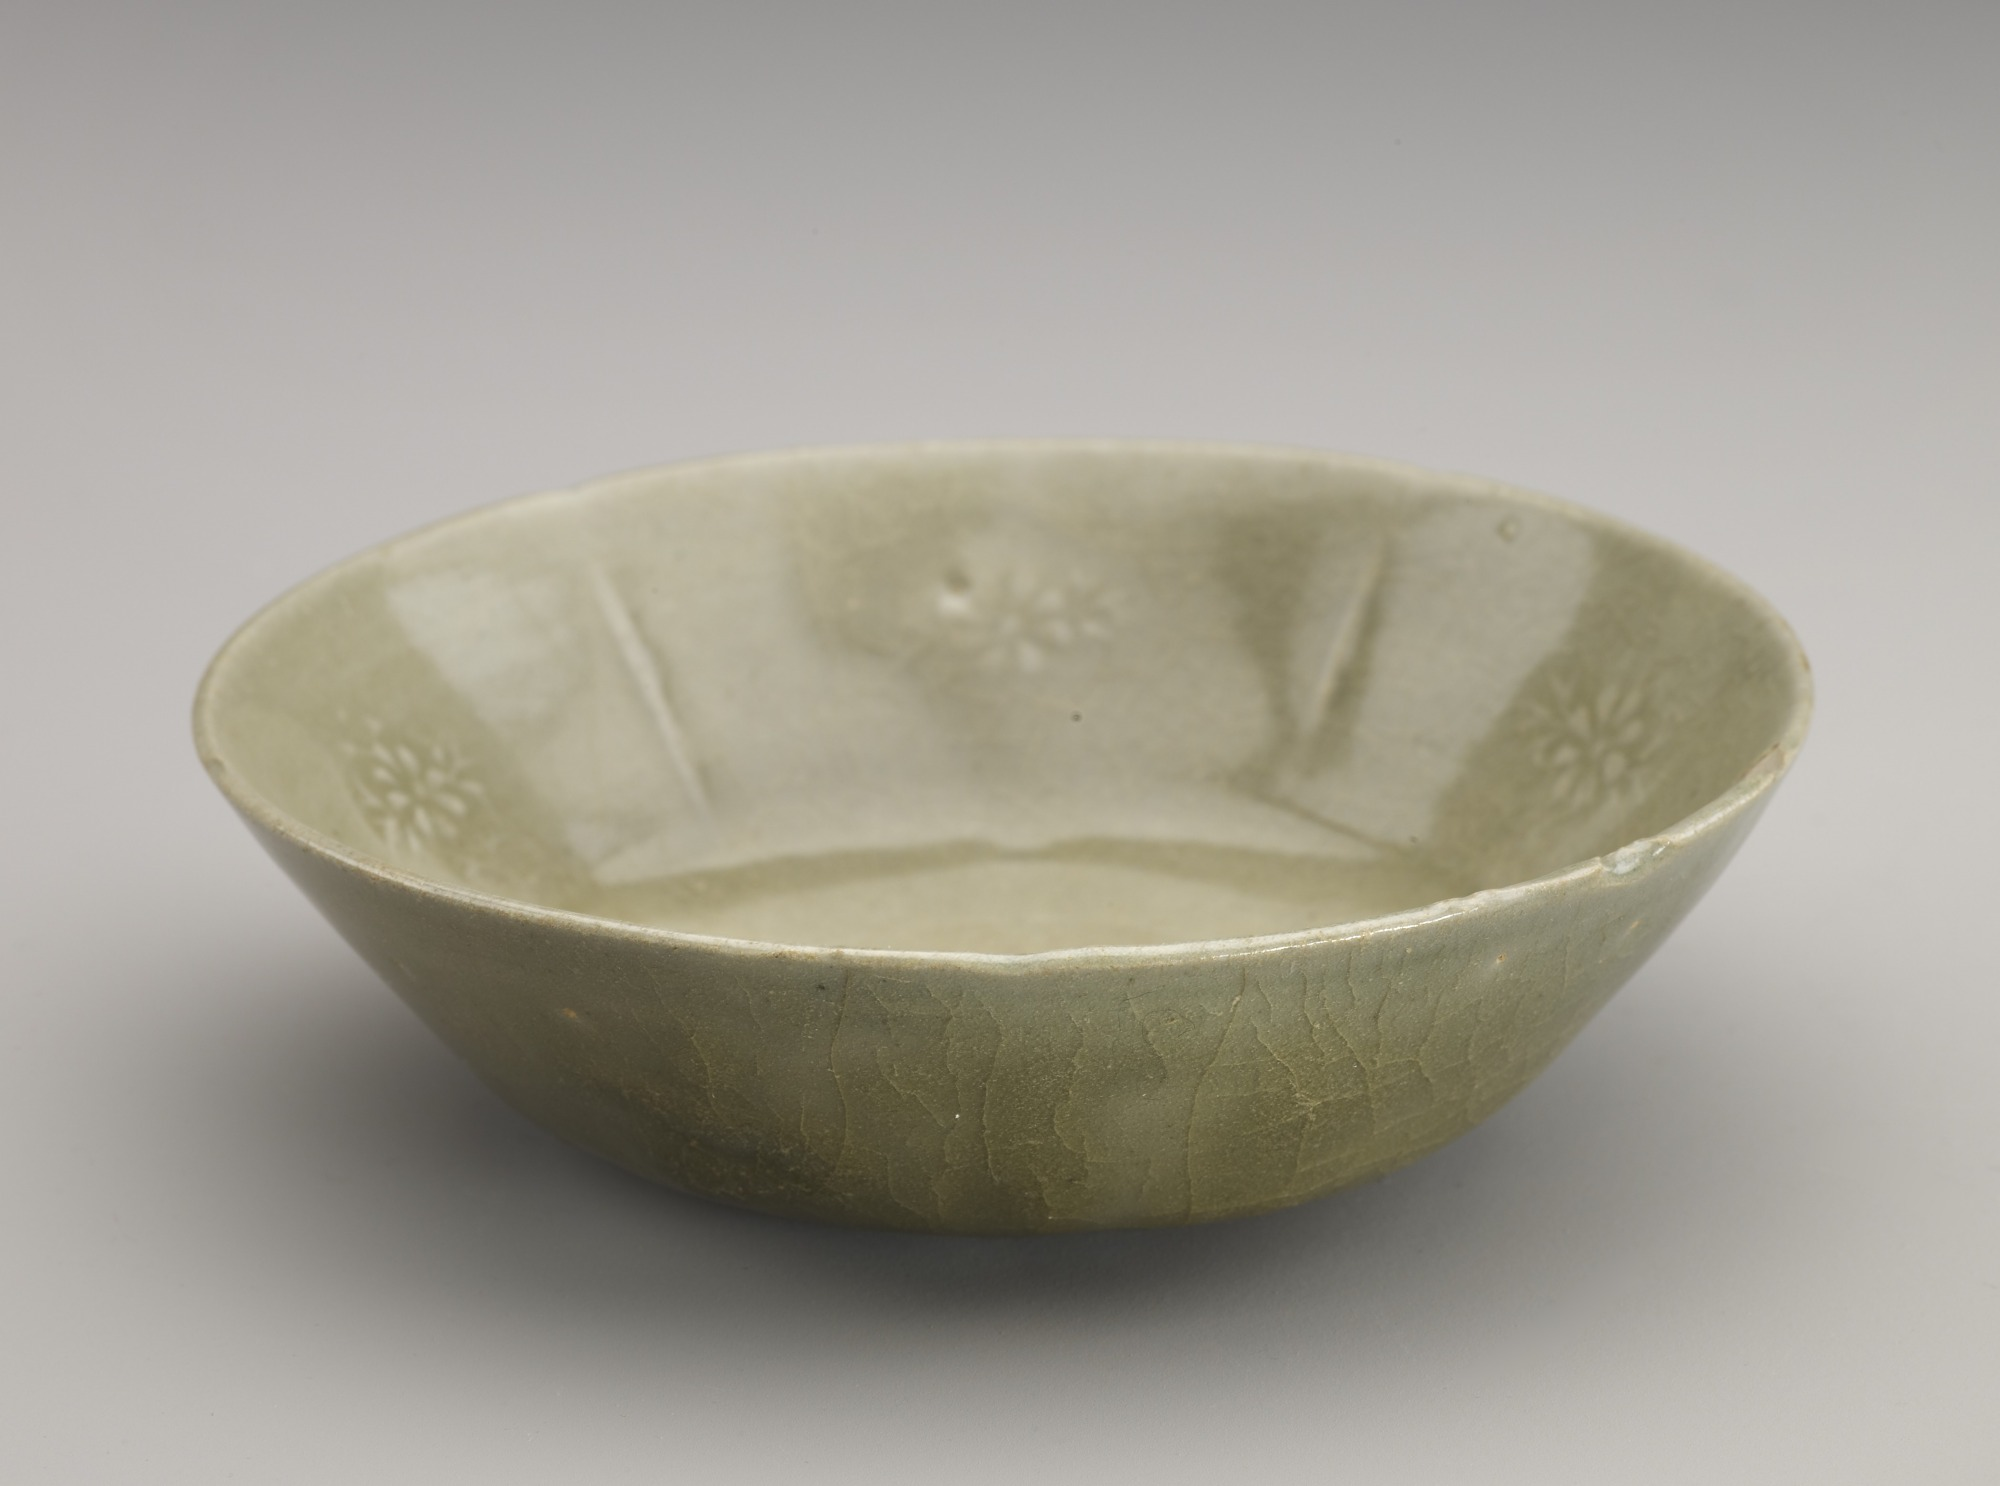 Dish with molded decoration, 3/4 profile